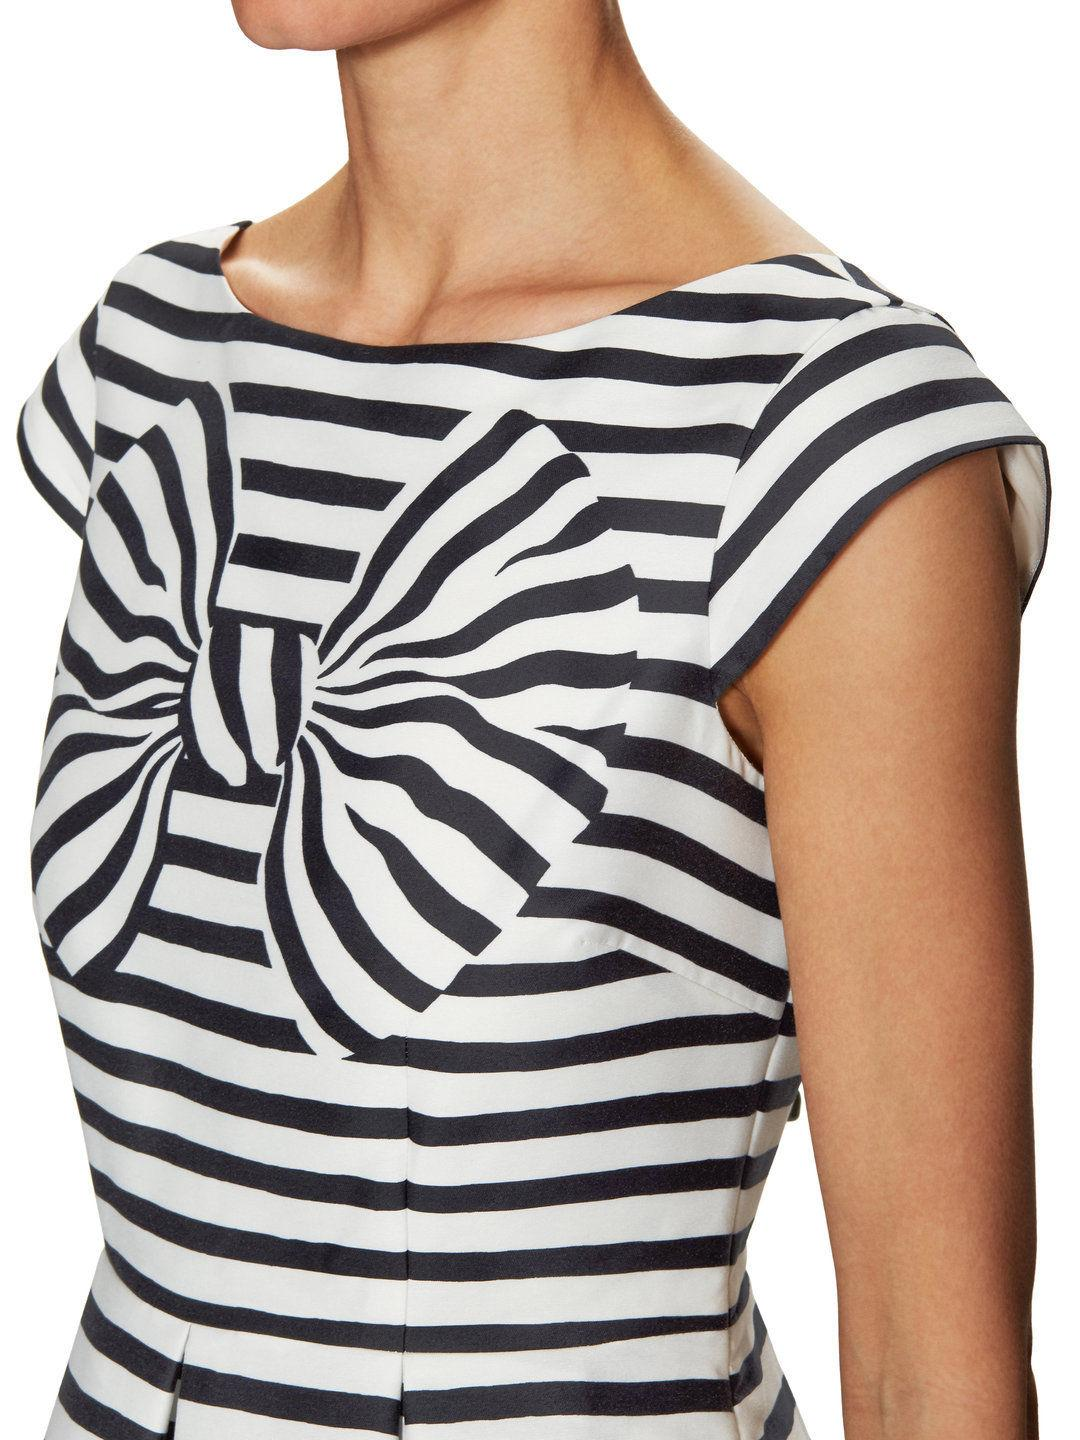 $448 Kate Spade New York Bow Stripe Mariella Fitted Dress Sz 14